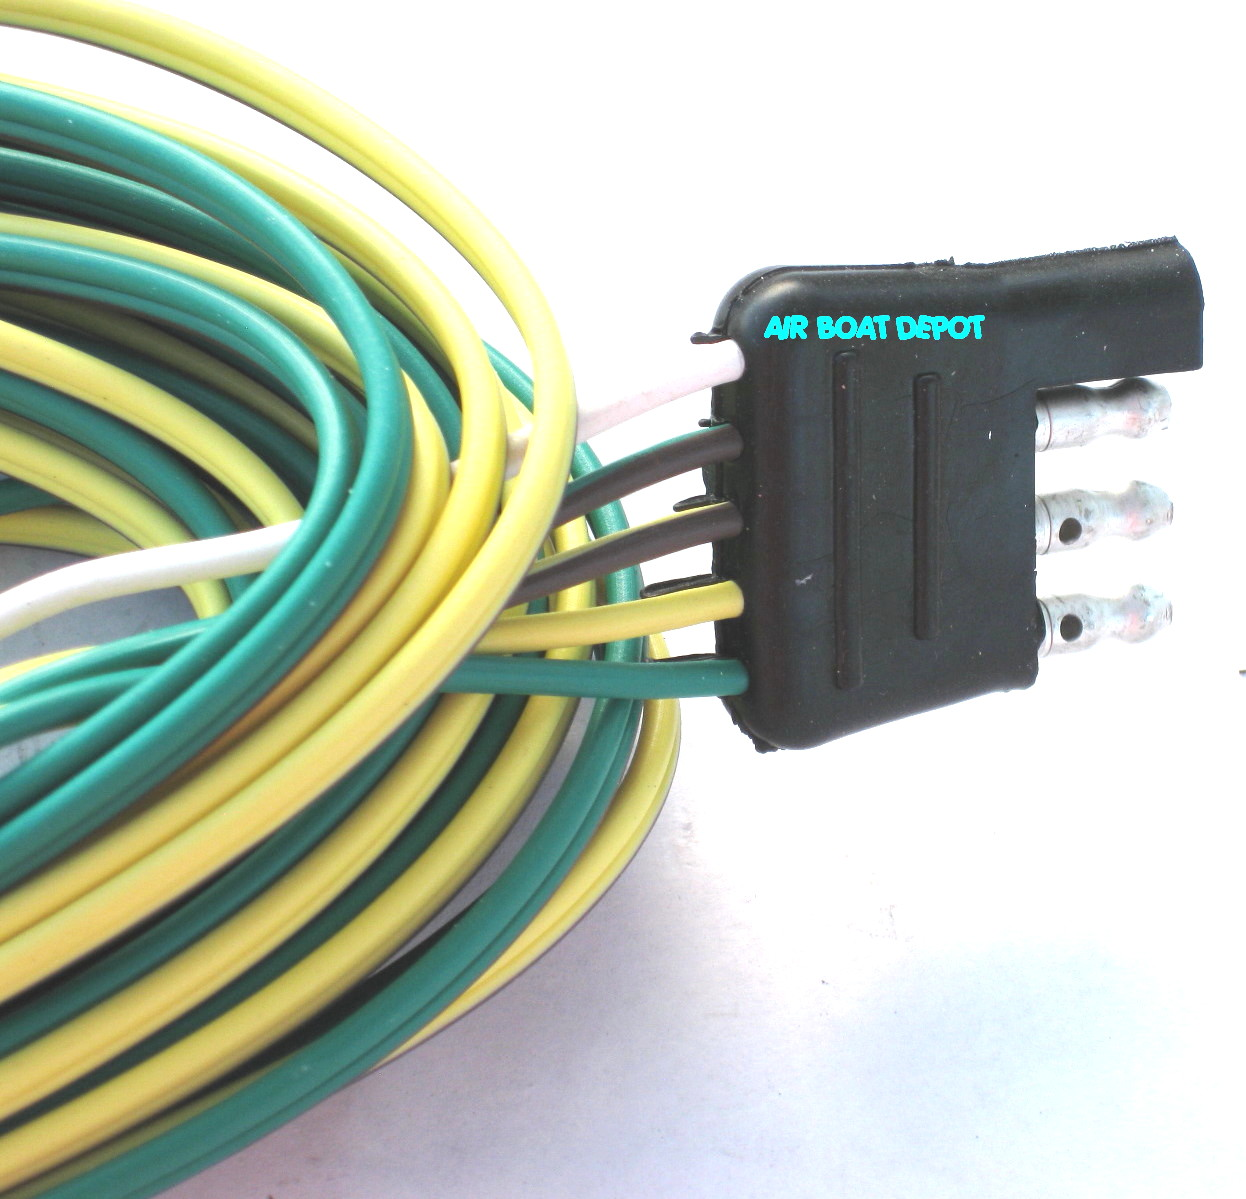 Wesbar Wiring Diagram | Wiring Diagram on 6 pin cable, 6 pin connectors harness, 6 pin power supply, 6 pin ignition switch, 6 pin transformer, 6 pin throttle body, 6 pin switch harness, 6 pin wiring connector, 6 pin voltage regulator,